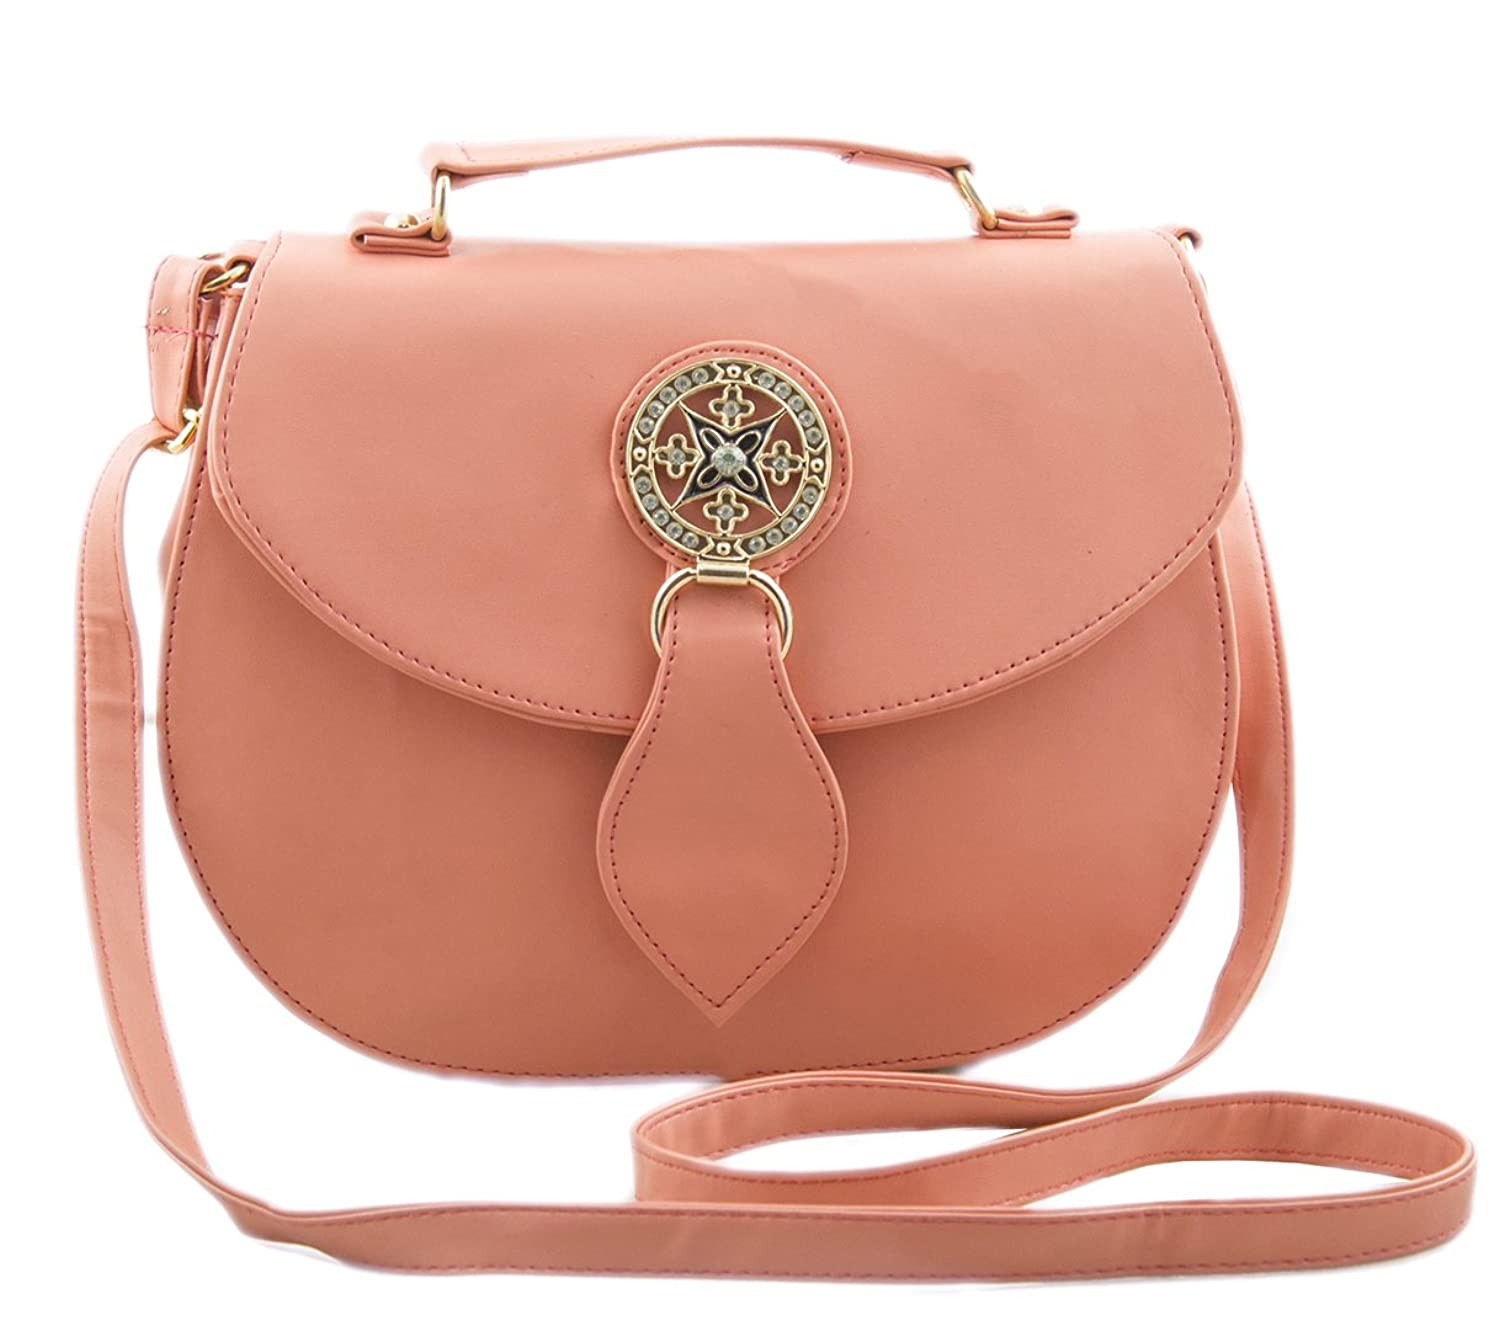 Voaka Women's Peach Sling Bag: Amazon.in: Clothing & Accessories